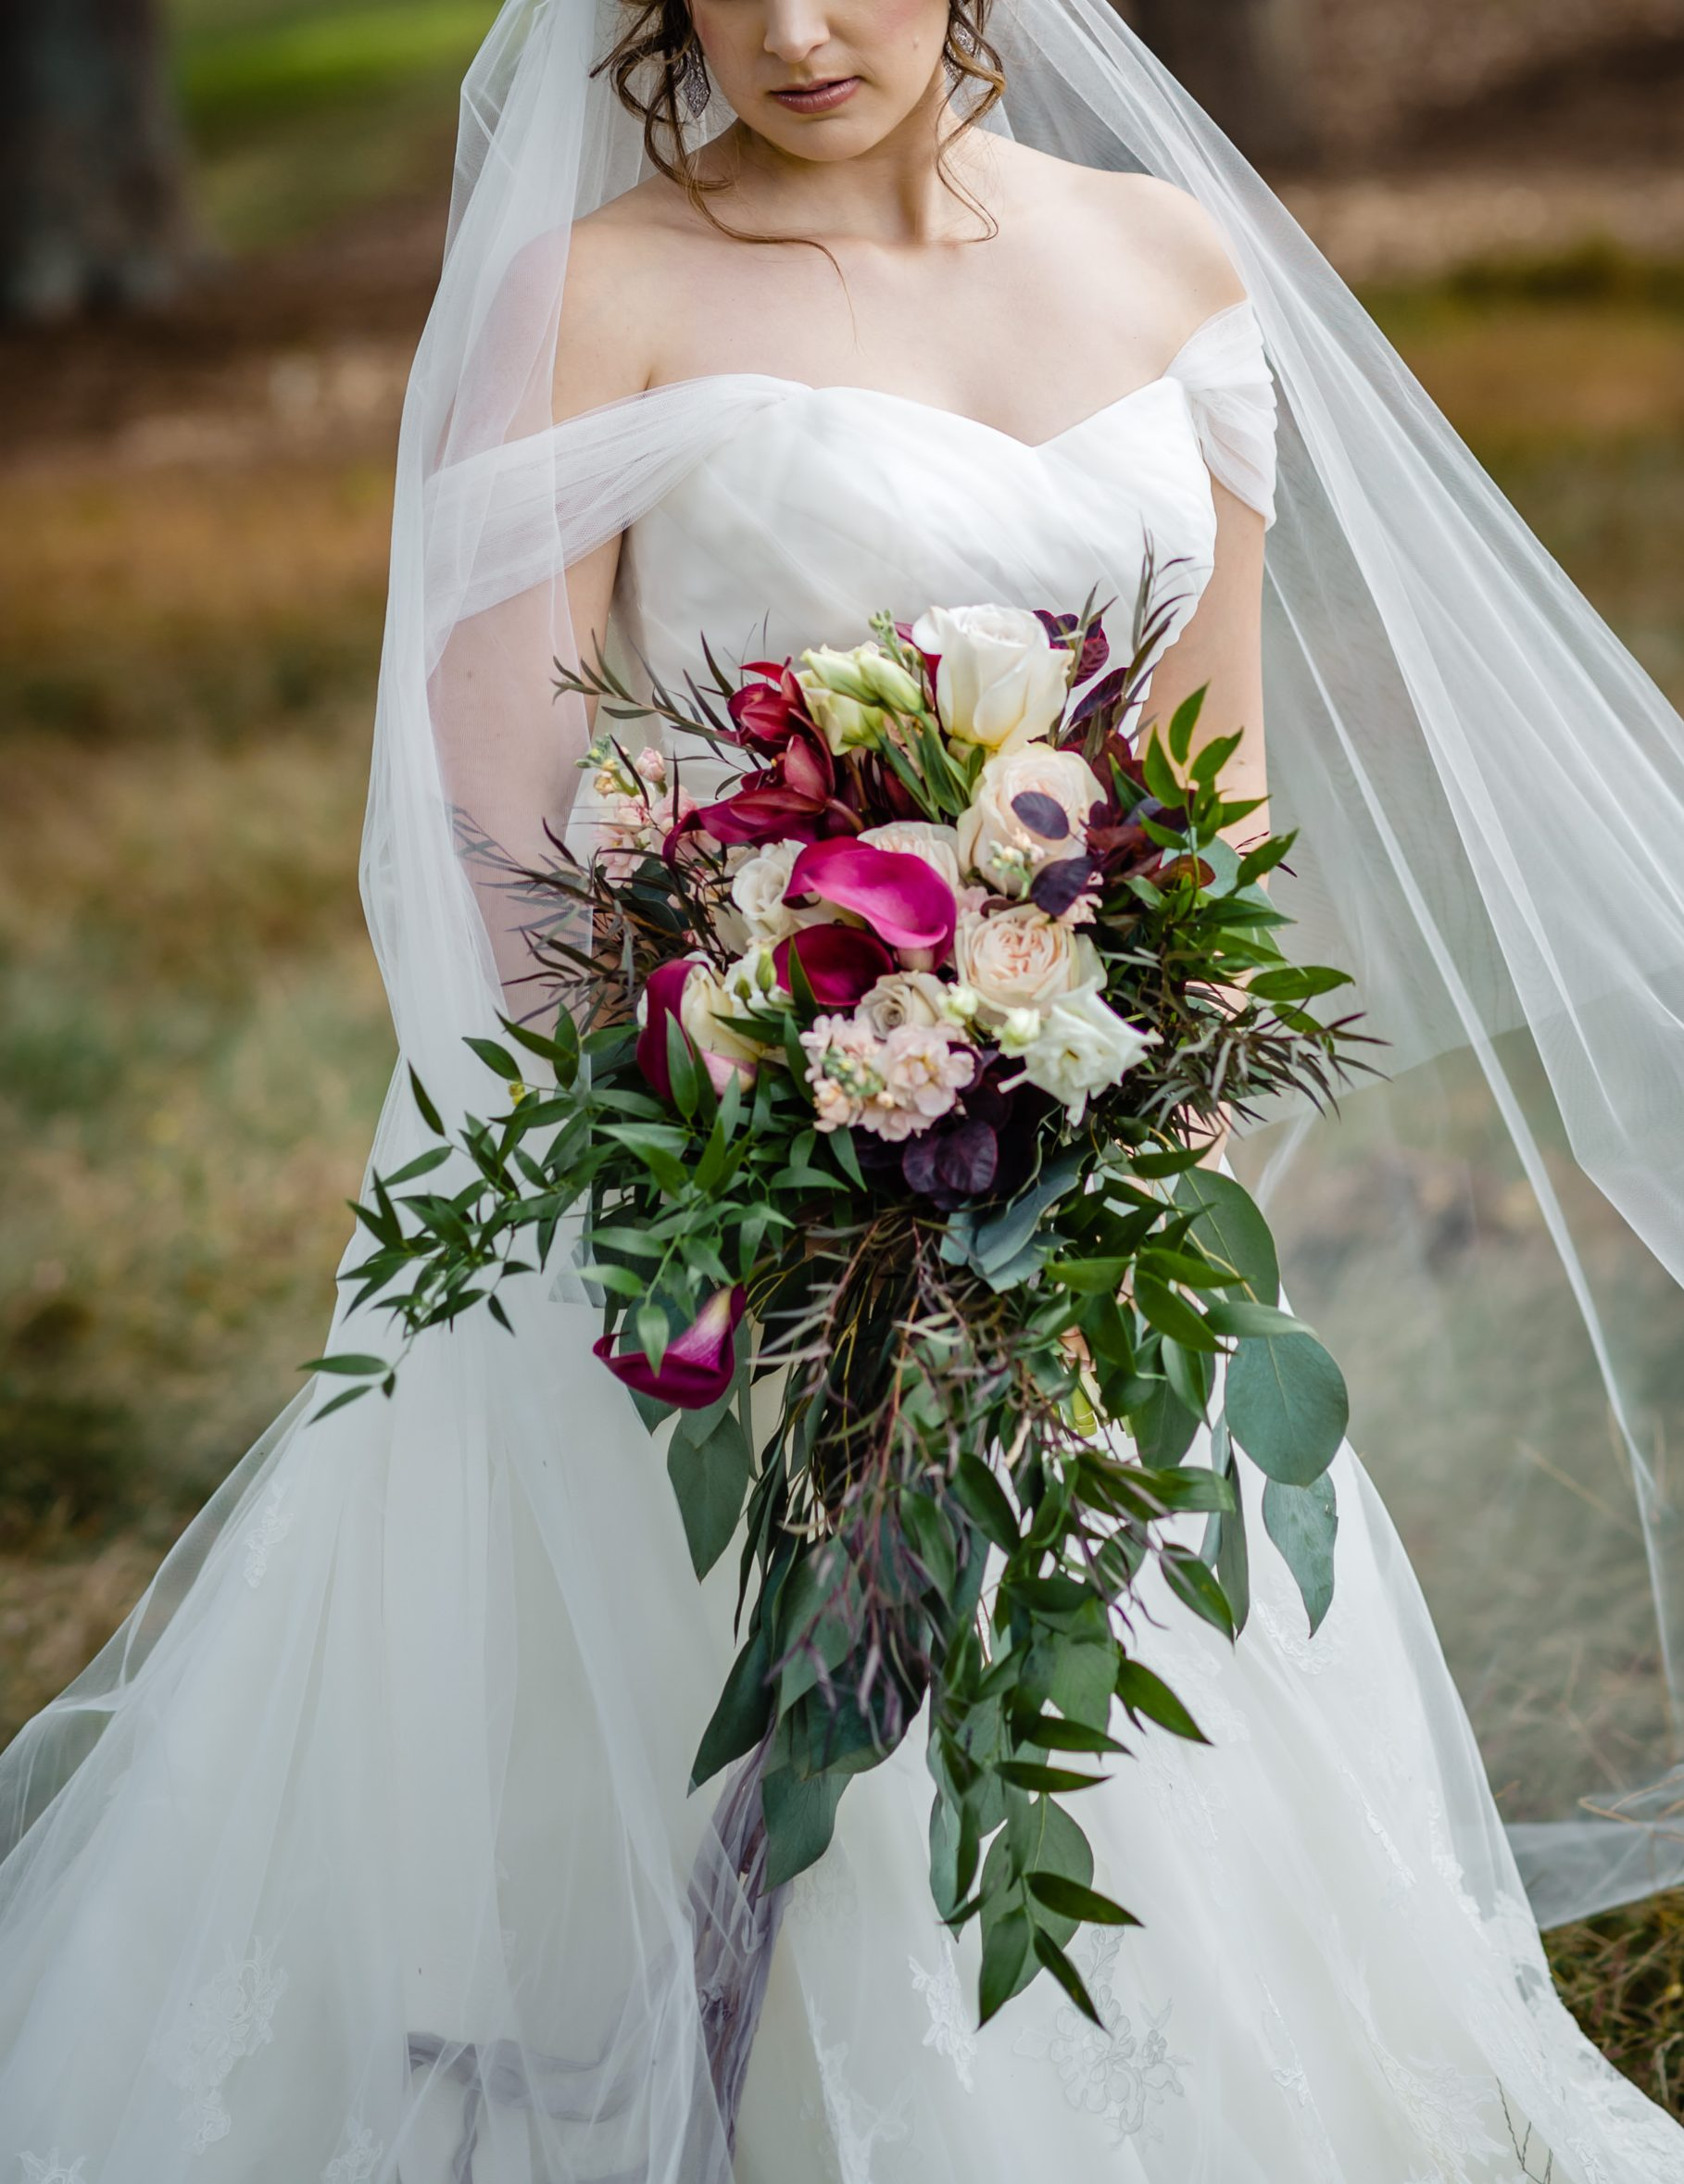 Bold Bridal Bouquet: How Much Does It Cost?